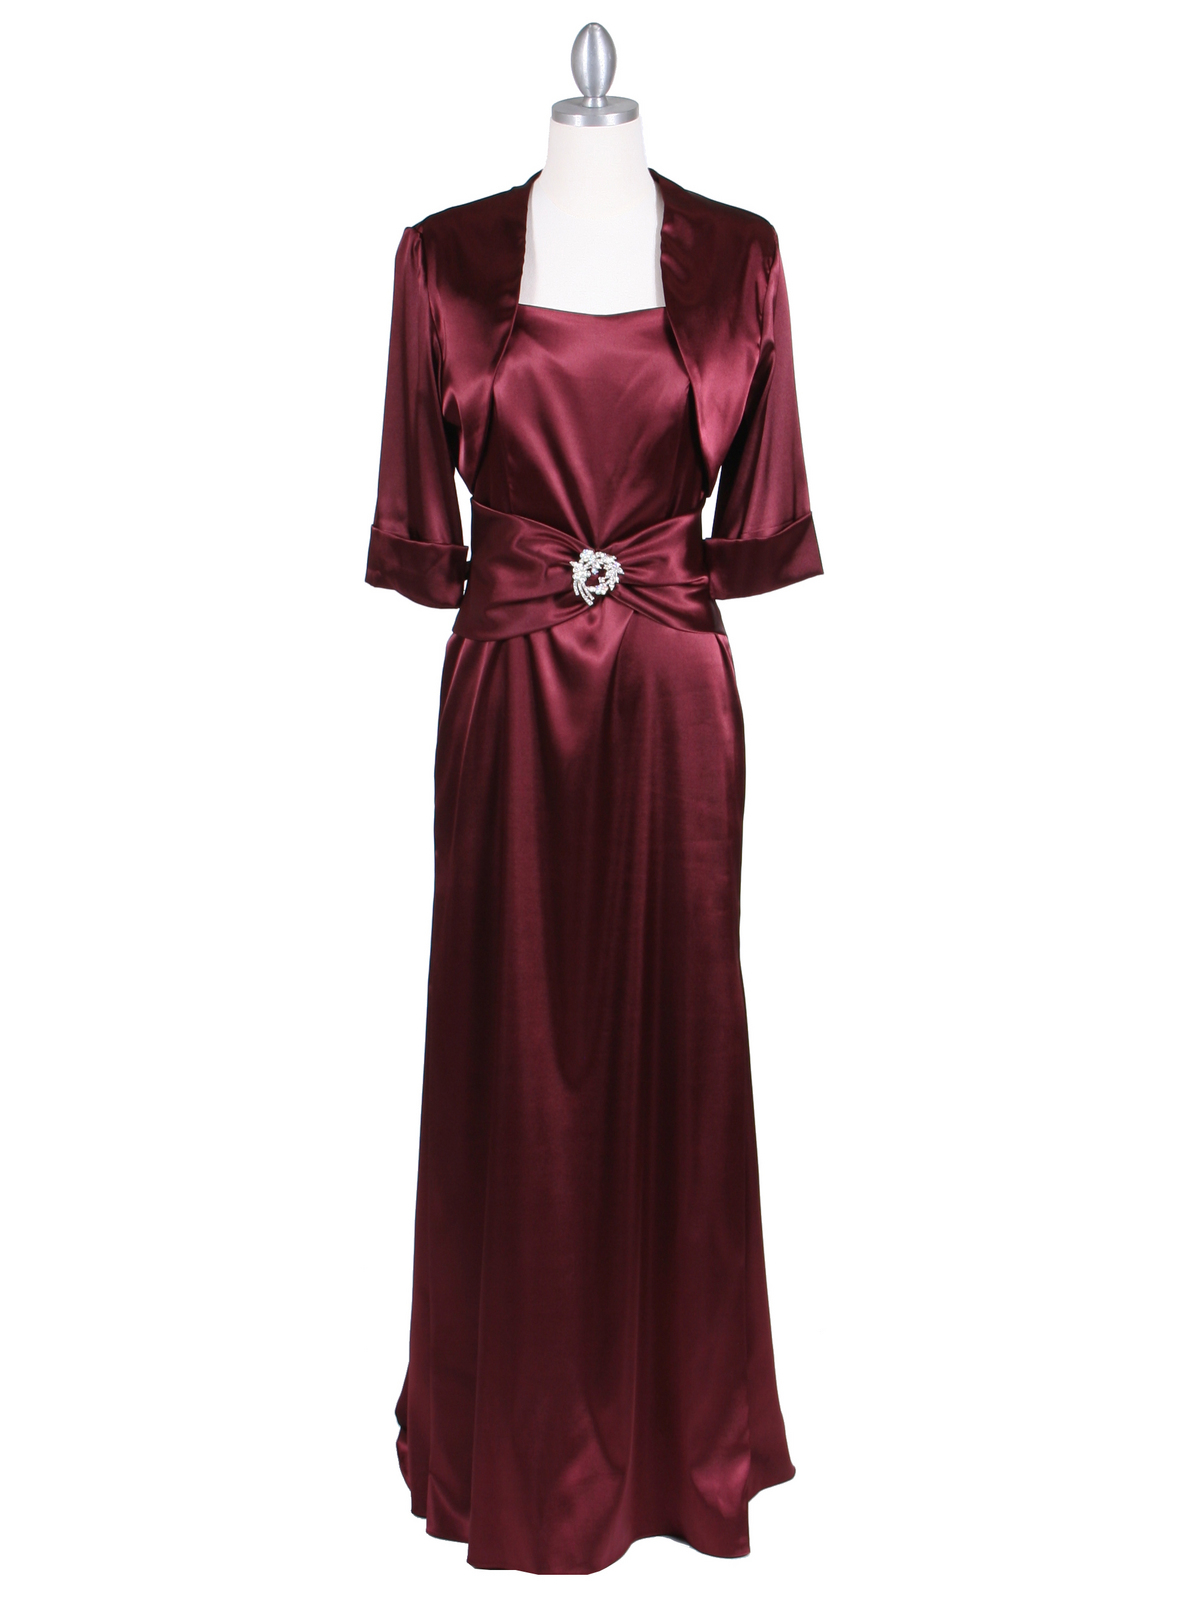 Wine Charmeuse Evening Dress With Bolero Jacket Sung